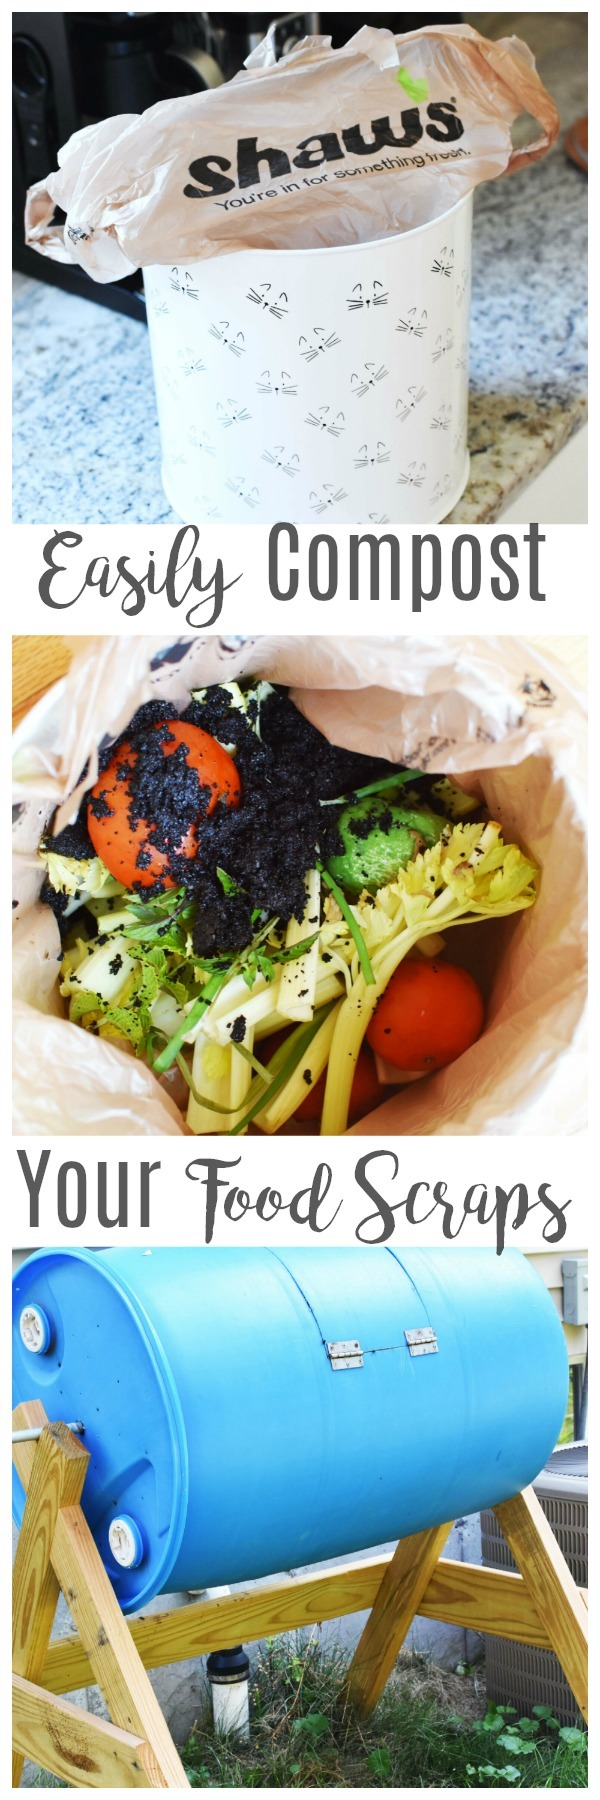 Easily Compost Your Food Scraps